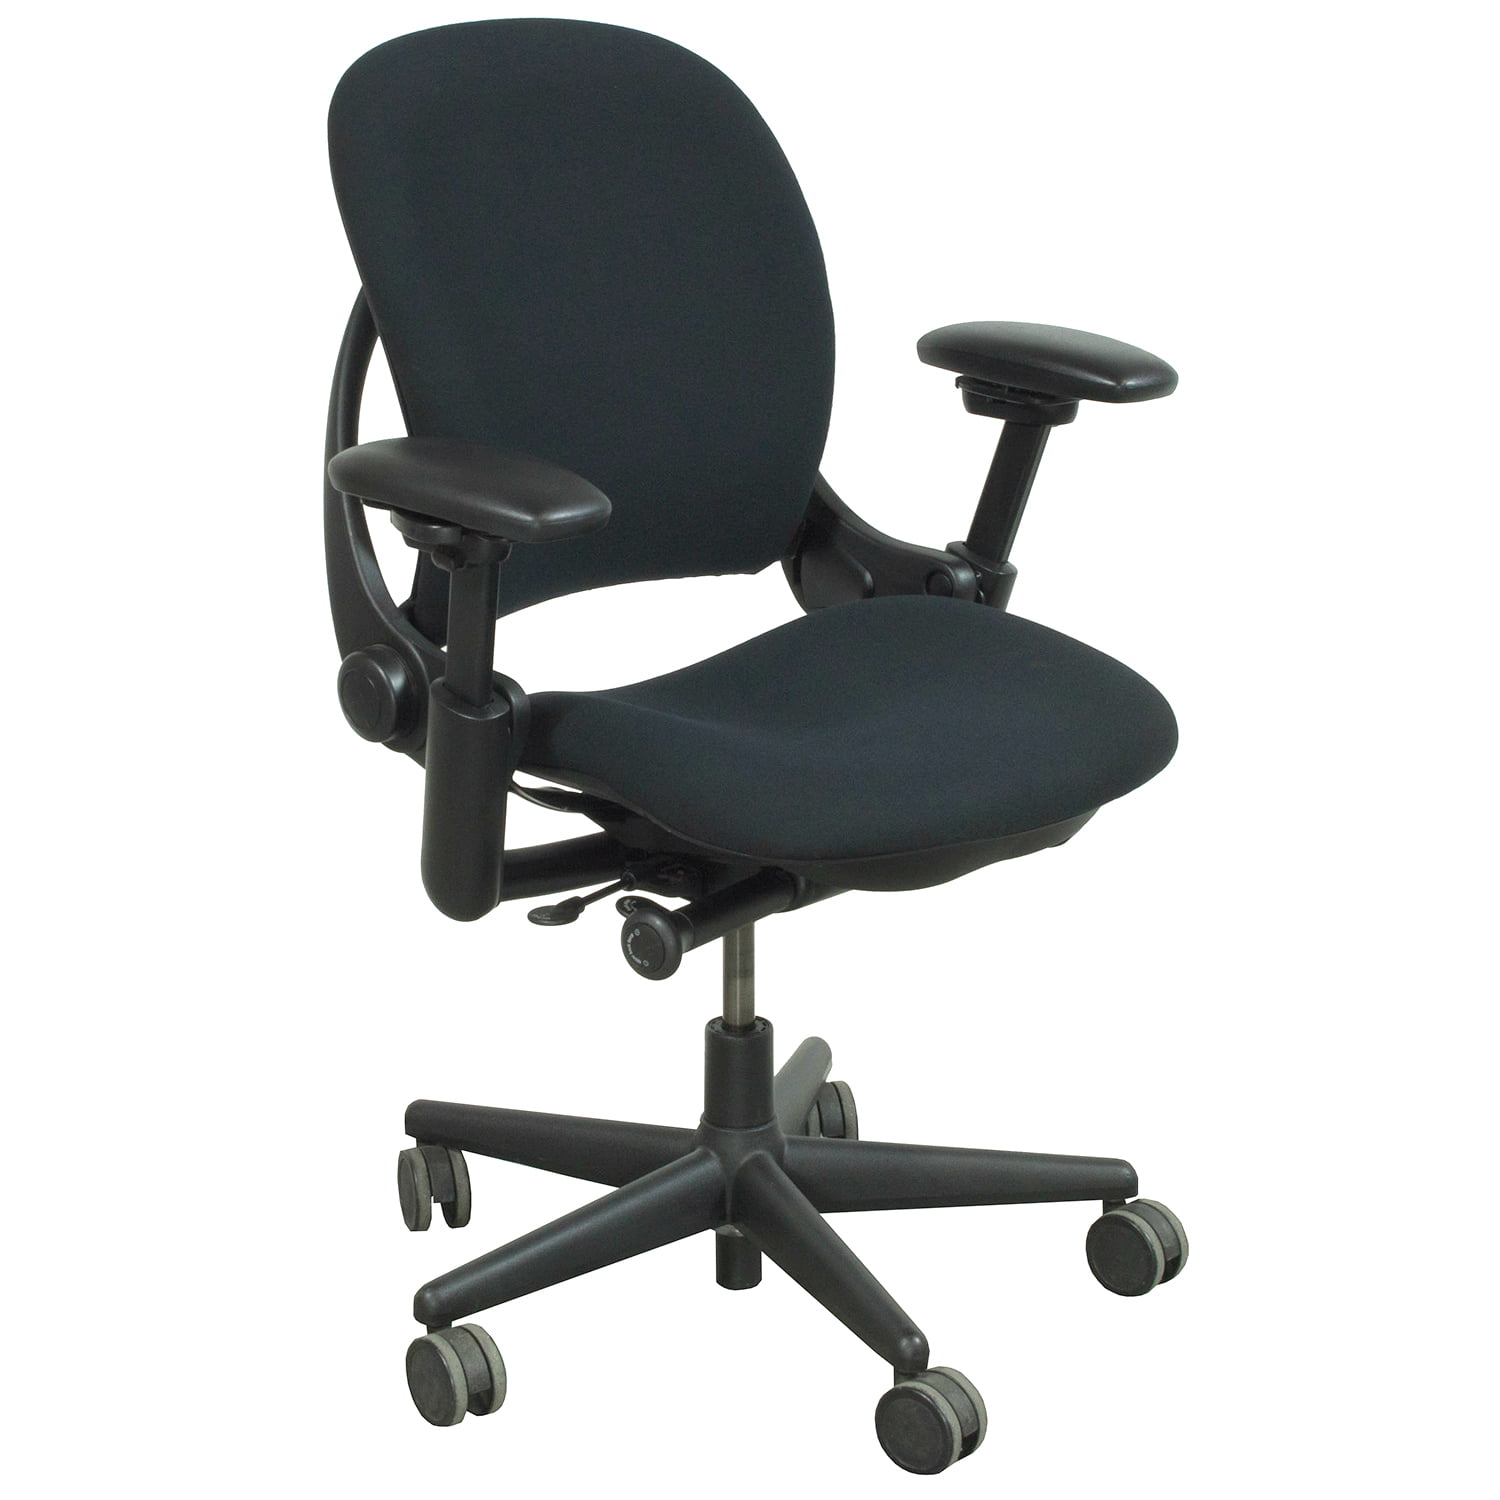 Steelcase Chair Steelcase Leap 1 Office Chair Unisource Office Furniture